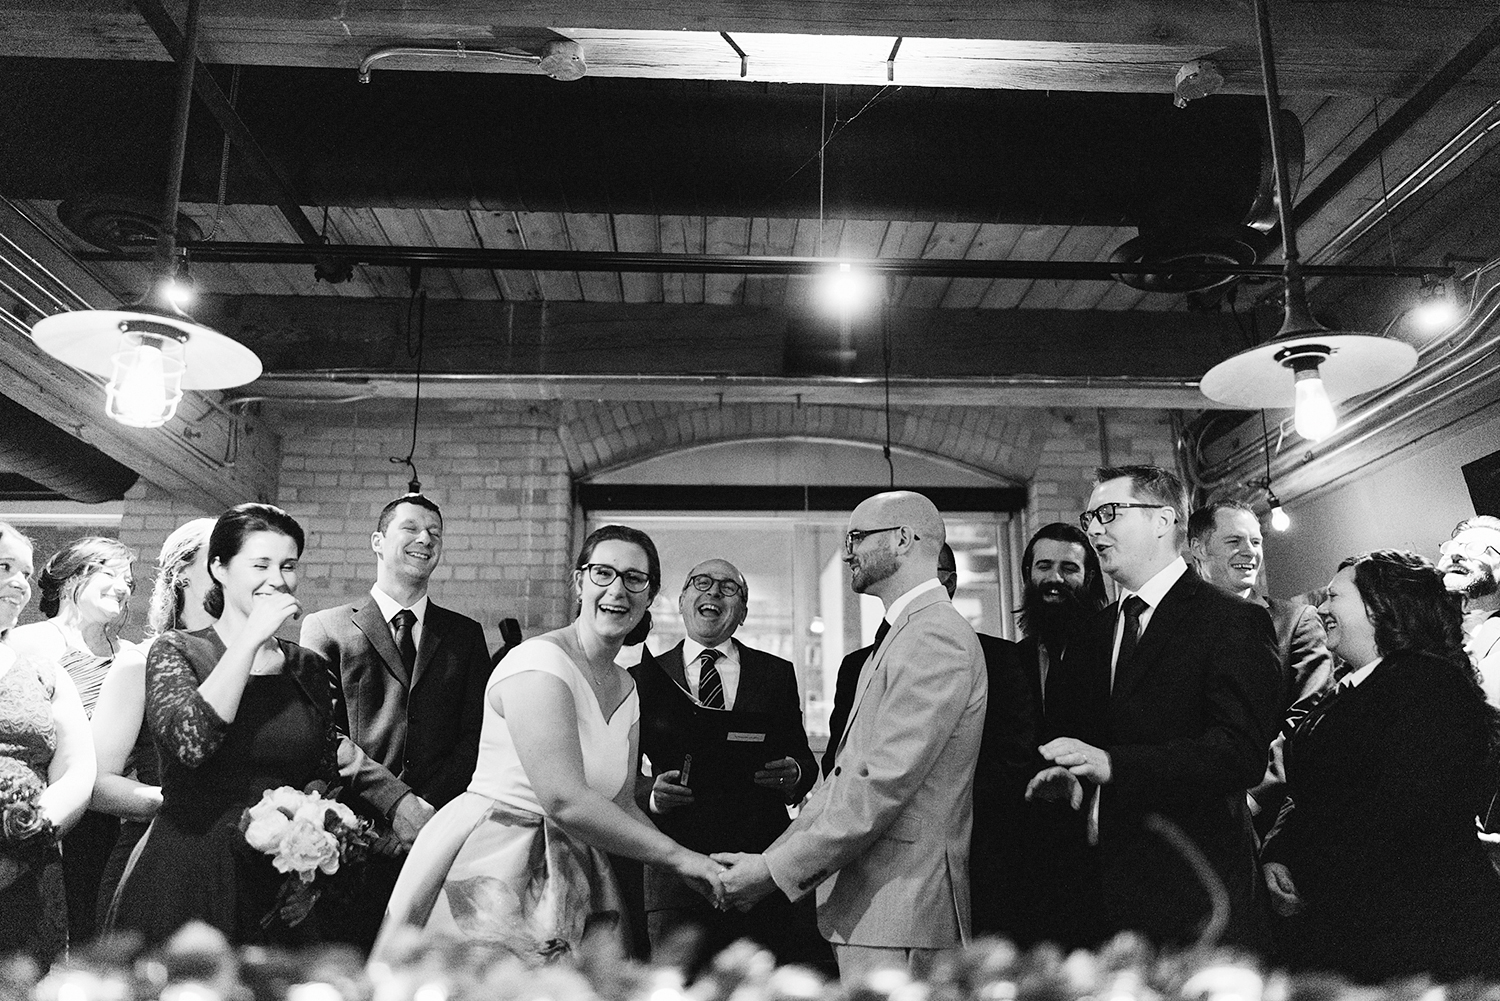 37-liberty-village-wedding-ceremony-toronto--craft-brewery-wedding-photographer-craft-brewery-alternative-unique-couple-analog-film-candid-documentary-moments-old-toronto-4.jpg